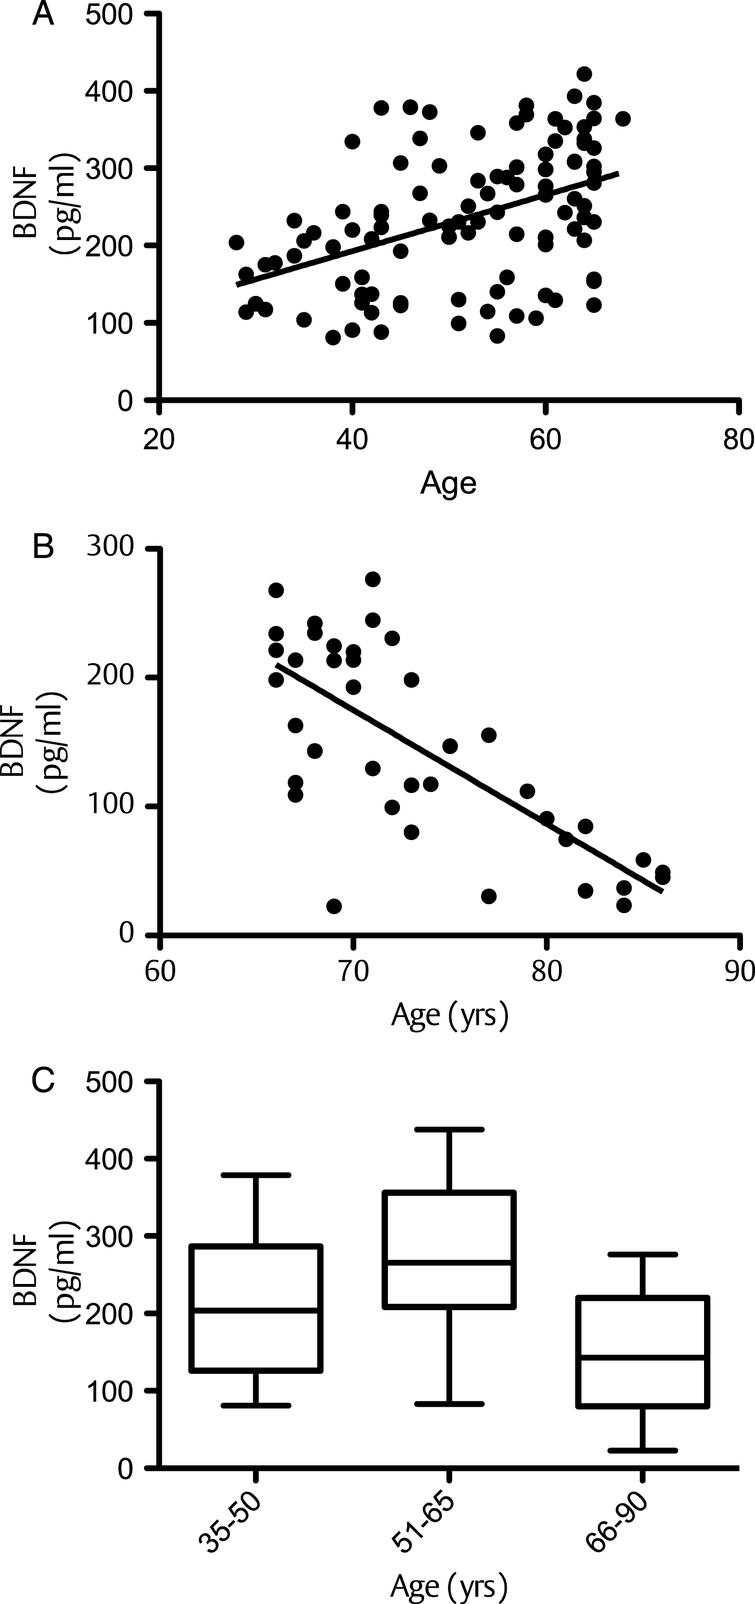 Correlation between serum BDNF and age: (A) correlation between BDNF and age for individuals up to 65years; (B) BDNF and age ages 65–90years; C: Whisker Plot showing tertiles of age against serum BDNF levels at baseline. A one-way analysis of variance indicated that the 3 means were significantly different from each other (P<0.001). Posthoc analysis, using aBonferroni multiple comparison test, indicated that the 51–65 group had significantly higher serum BDNF levels compared to the 35–50 age group (a: p<0.01), whilst the 66–90 group had significantly lower BDNF levels than the 35–50 group (b: p<0.05) and the 51–65 group (c: p<0.001). Horizontal lines within bars indicates mean level and bars indicates 25–75% distribution; Error lines indicate the min and max serum BDNF levels measured.